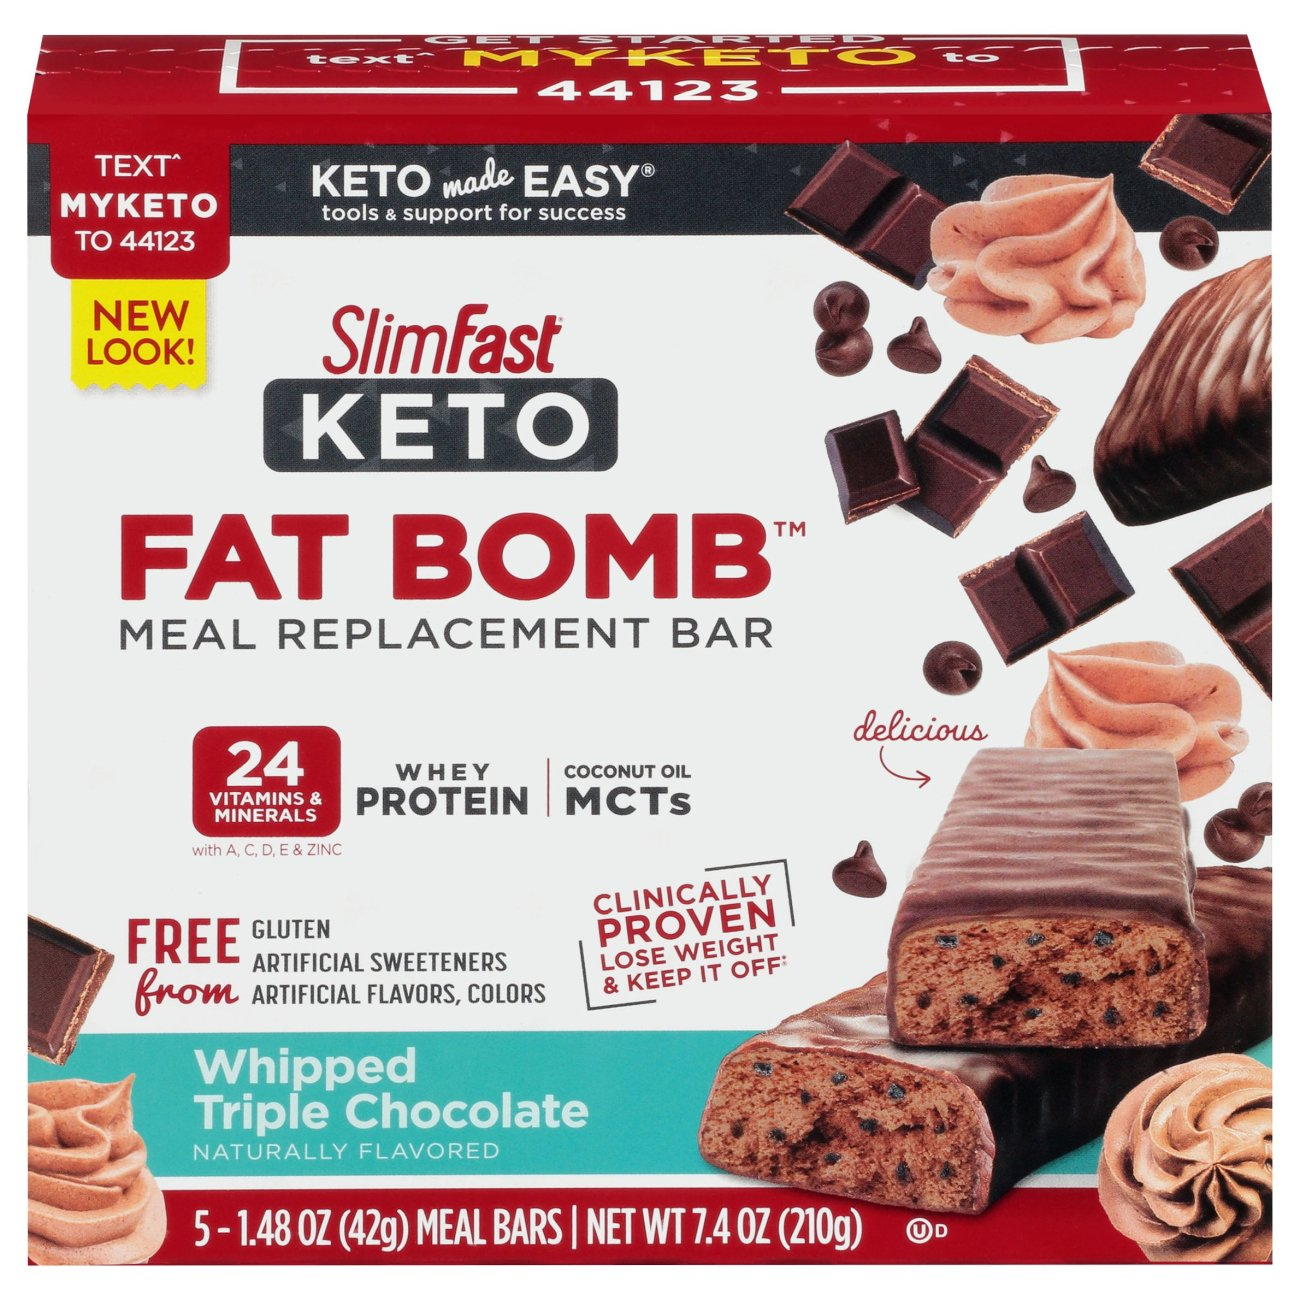 Slimfast Keto Whipped Triple Chocolate Meal Bar Shop Diet Fitness At H E B